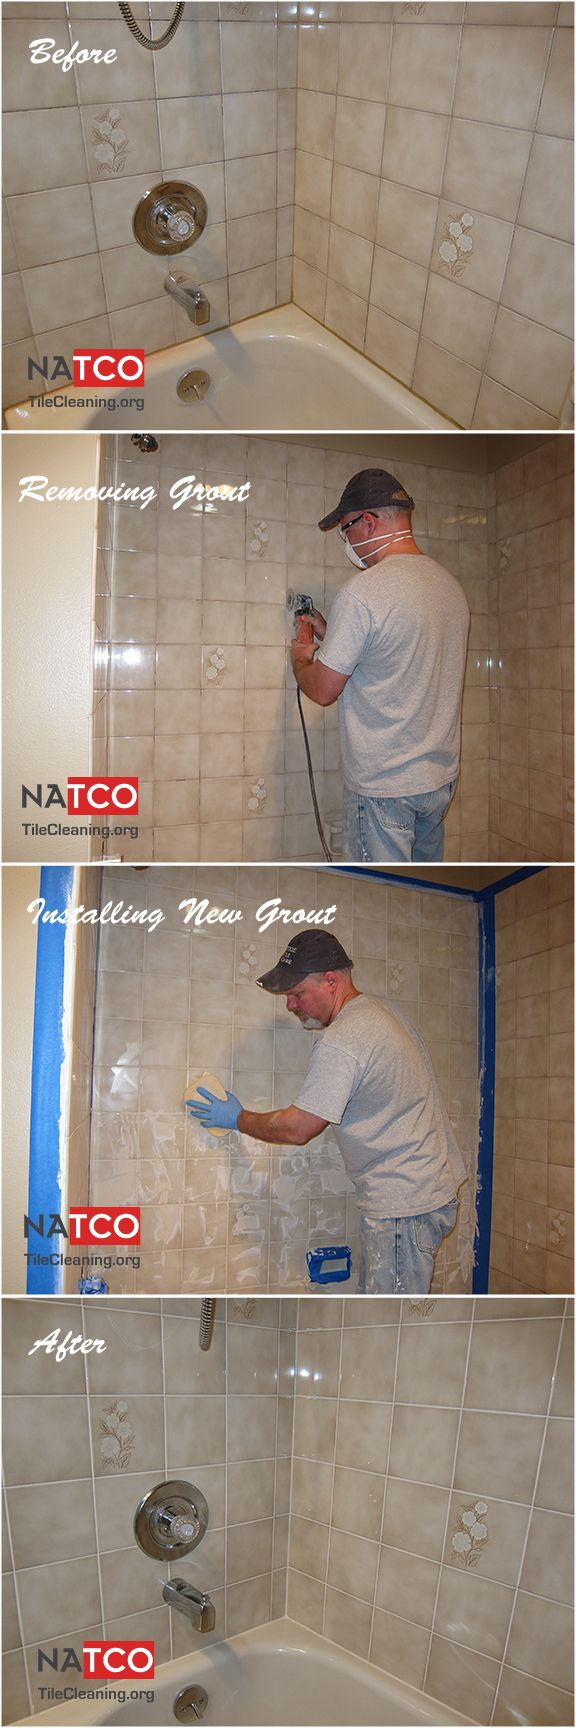 14 best re grouting re caulking images on pinterest grouting steps involved for regrouting a tile shower removing grout with a fein supercut installing dailygadgetfo Images